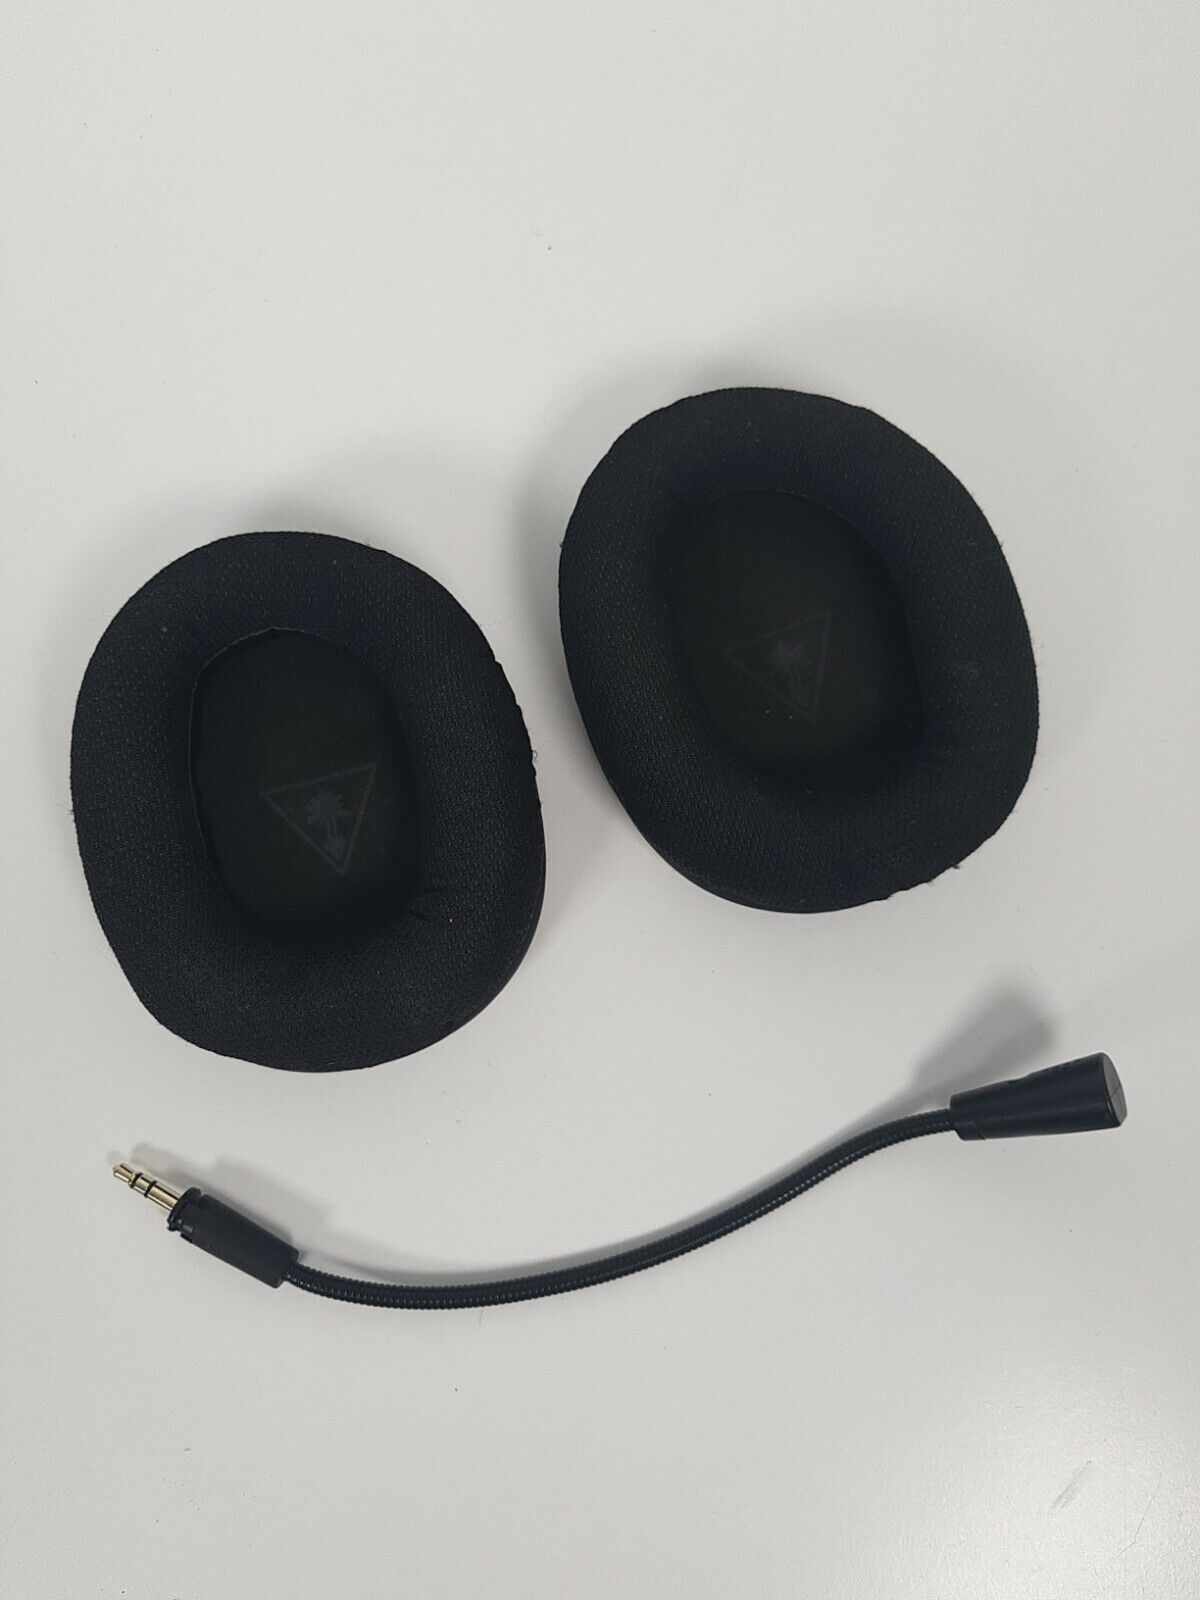 Turtle beach RECON150 Gaming Headset Replacement Cushion Pads & Microphone